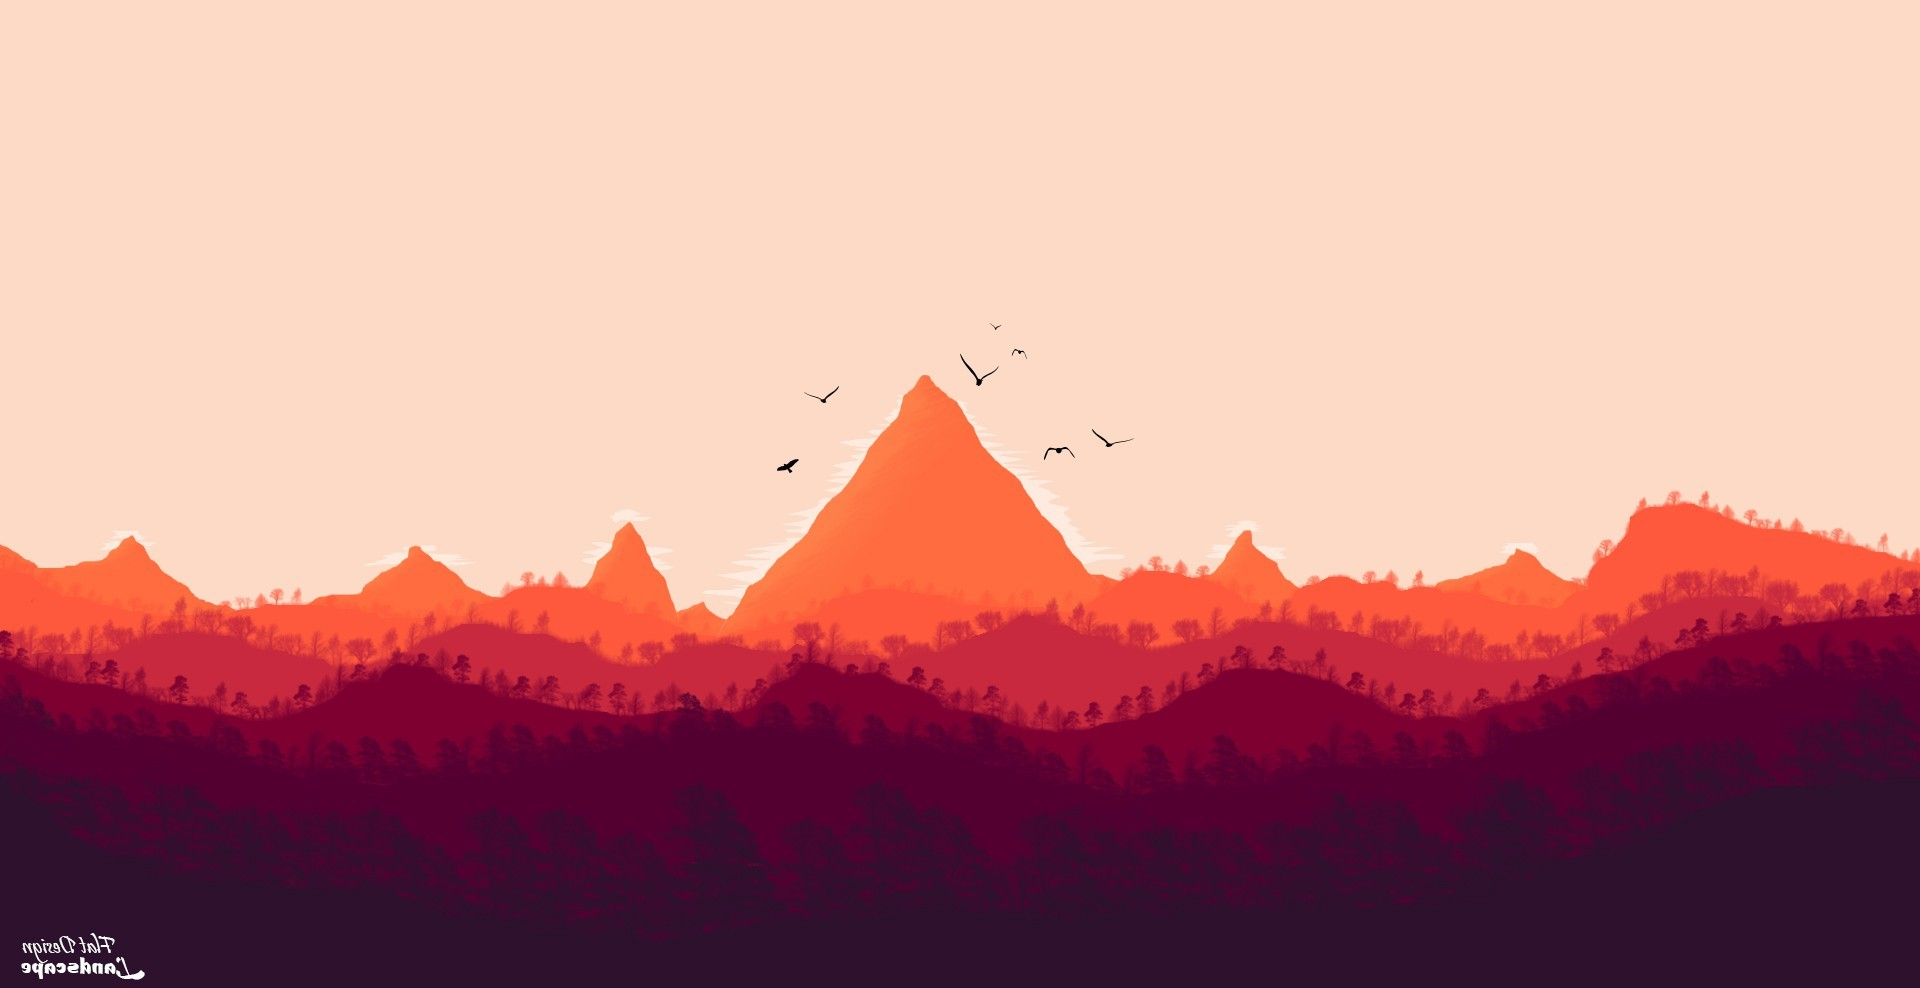 Animated Hd Wallpapers 1080p Free Download Firewatch Digital 2d Digital Art Photoshop Landscape